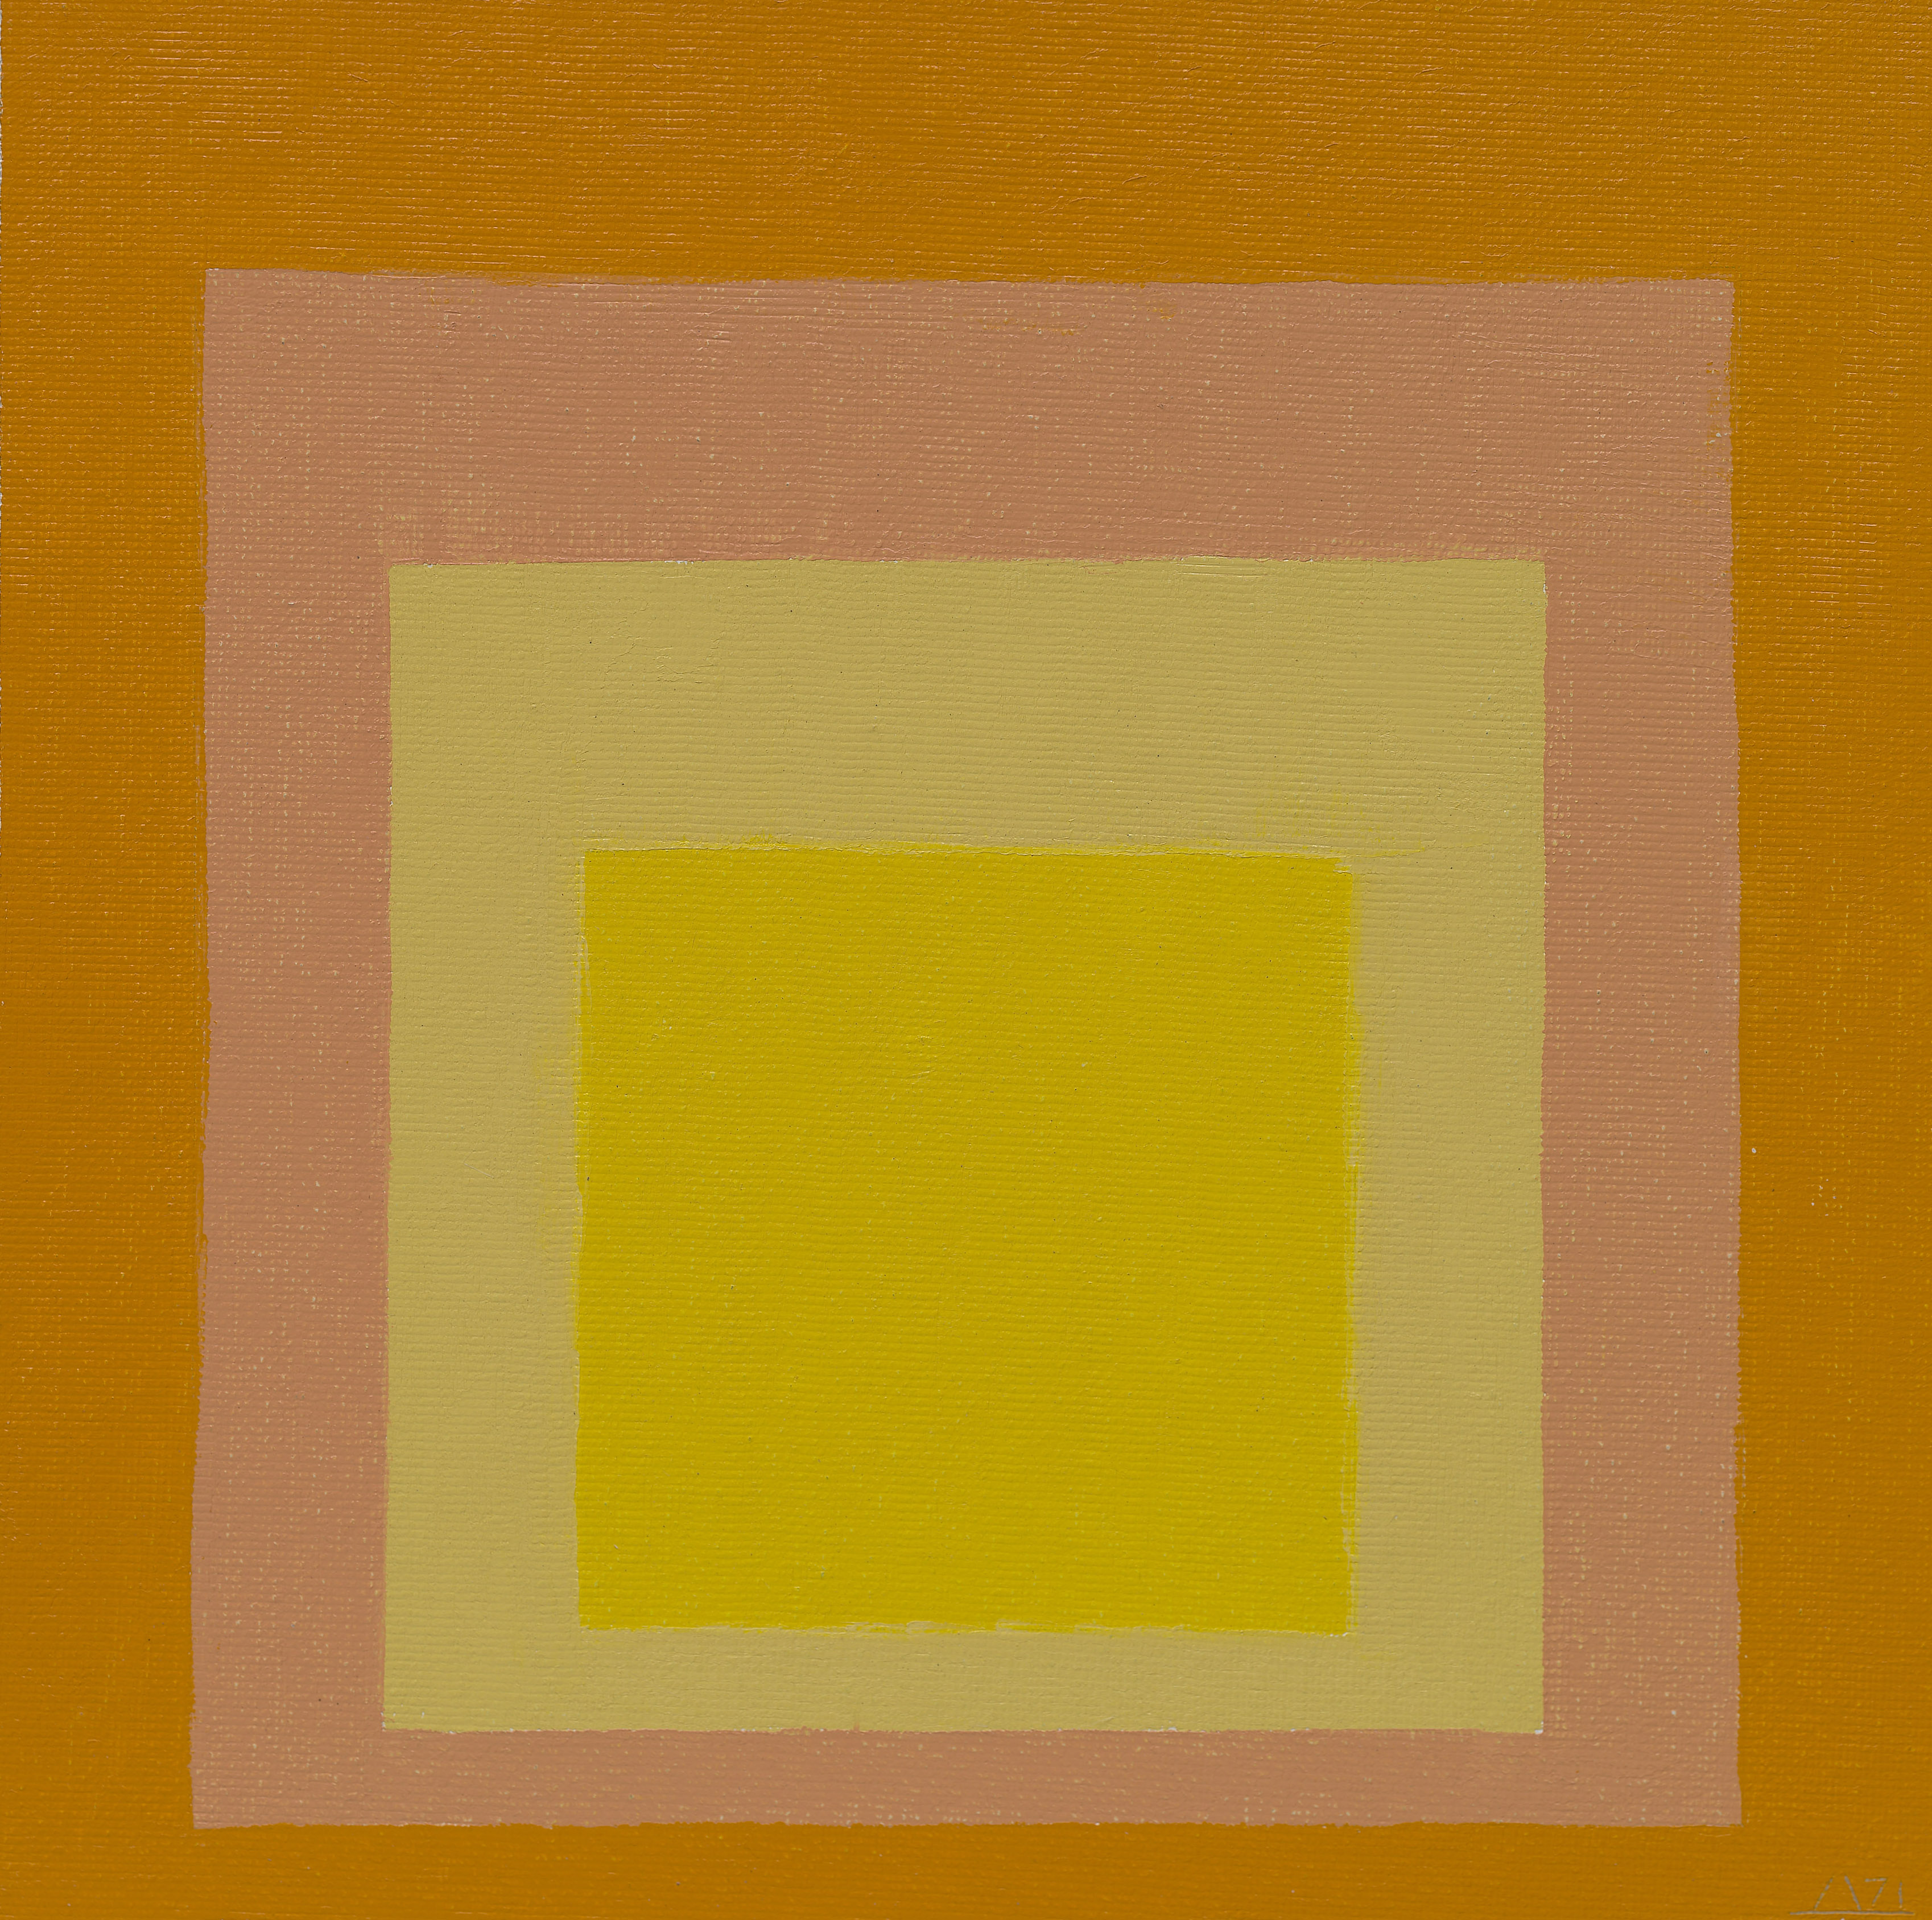 Study for Homage to the Square: Consent